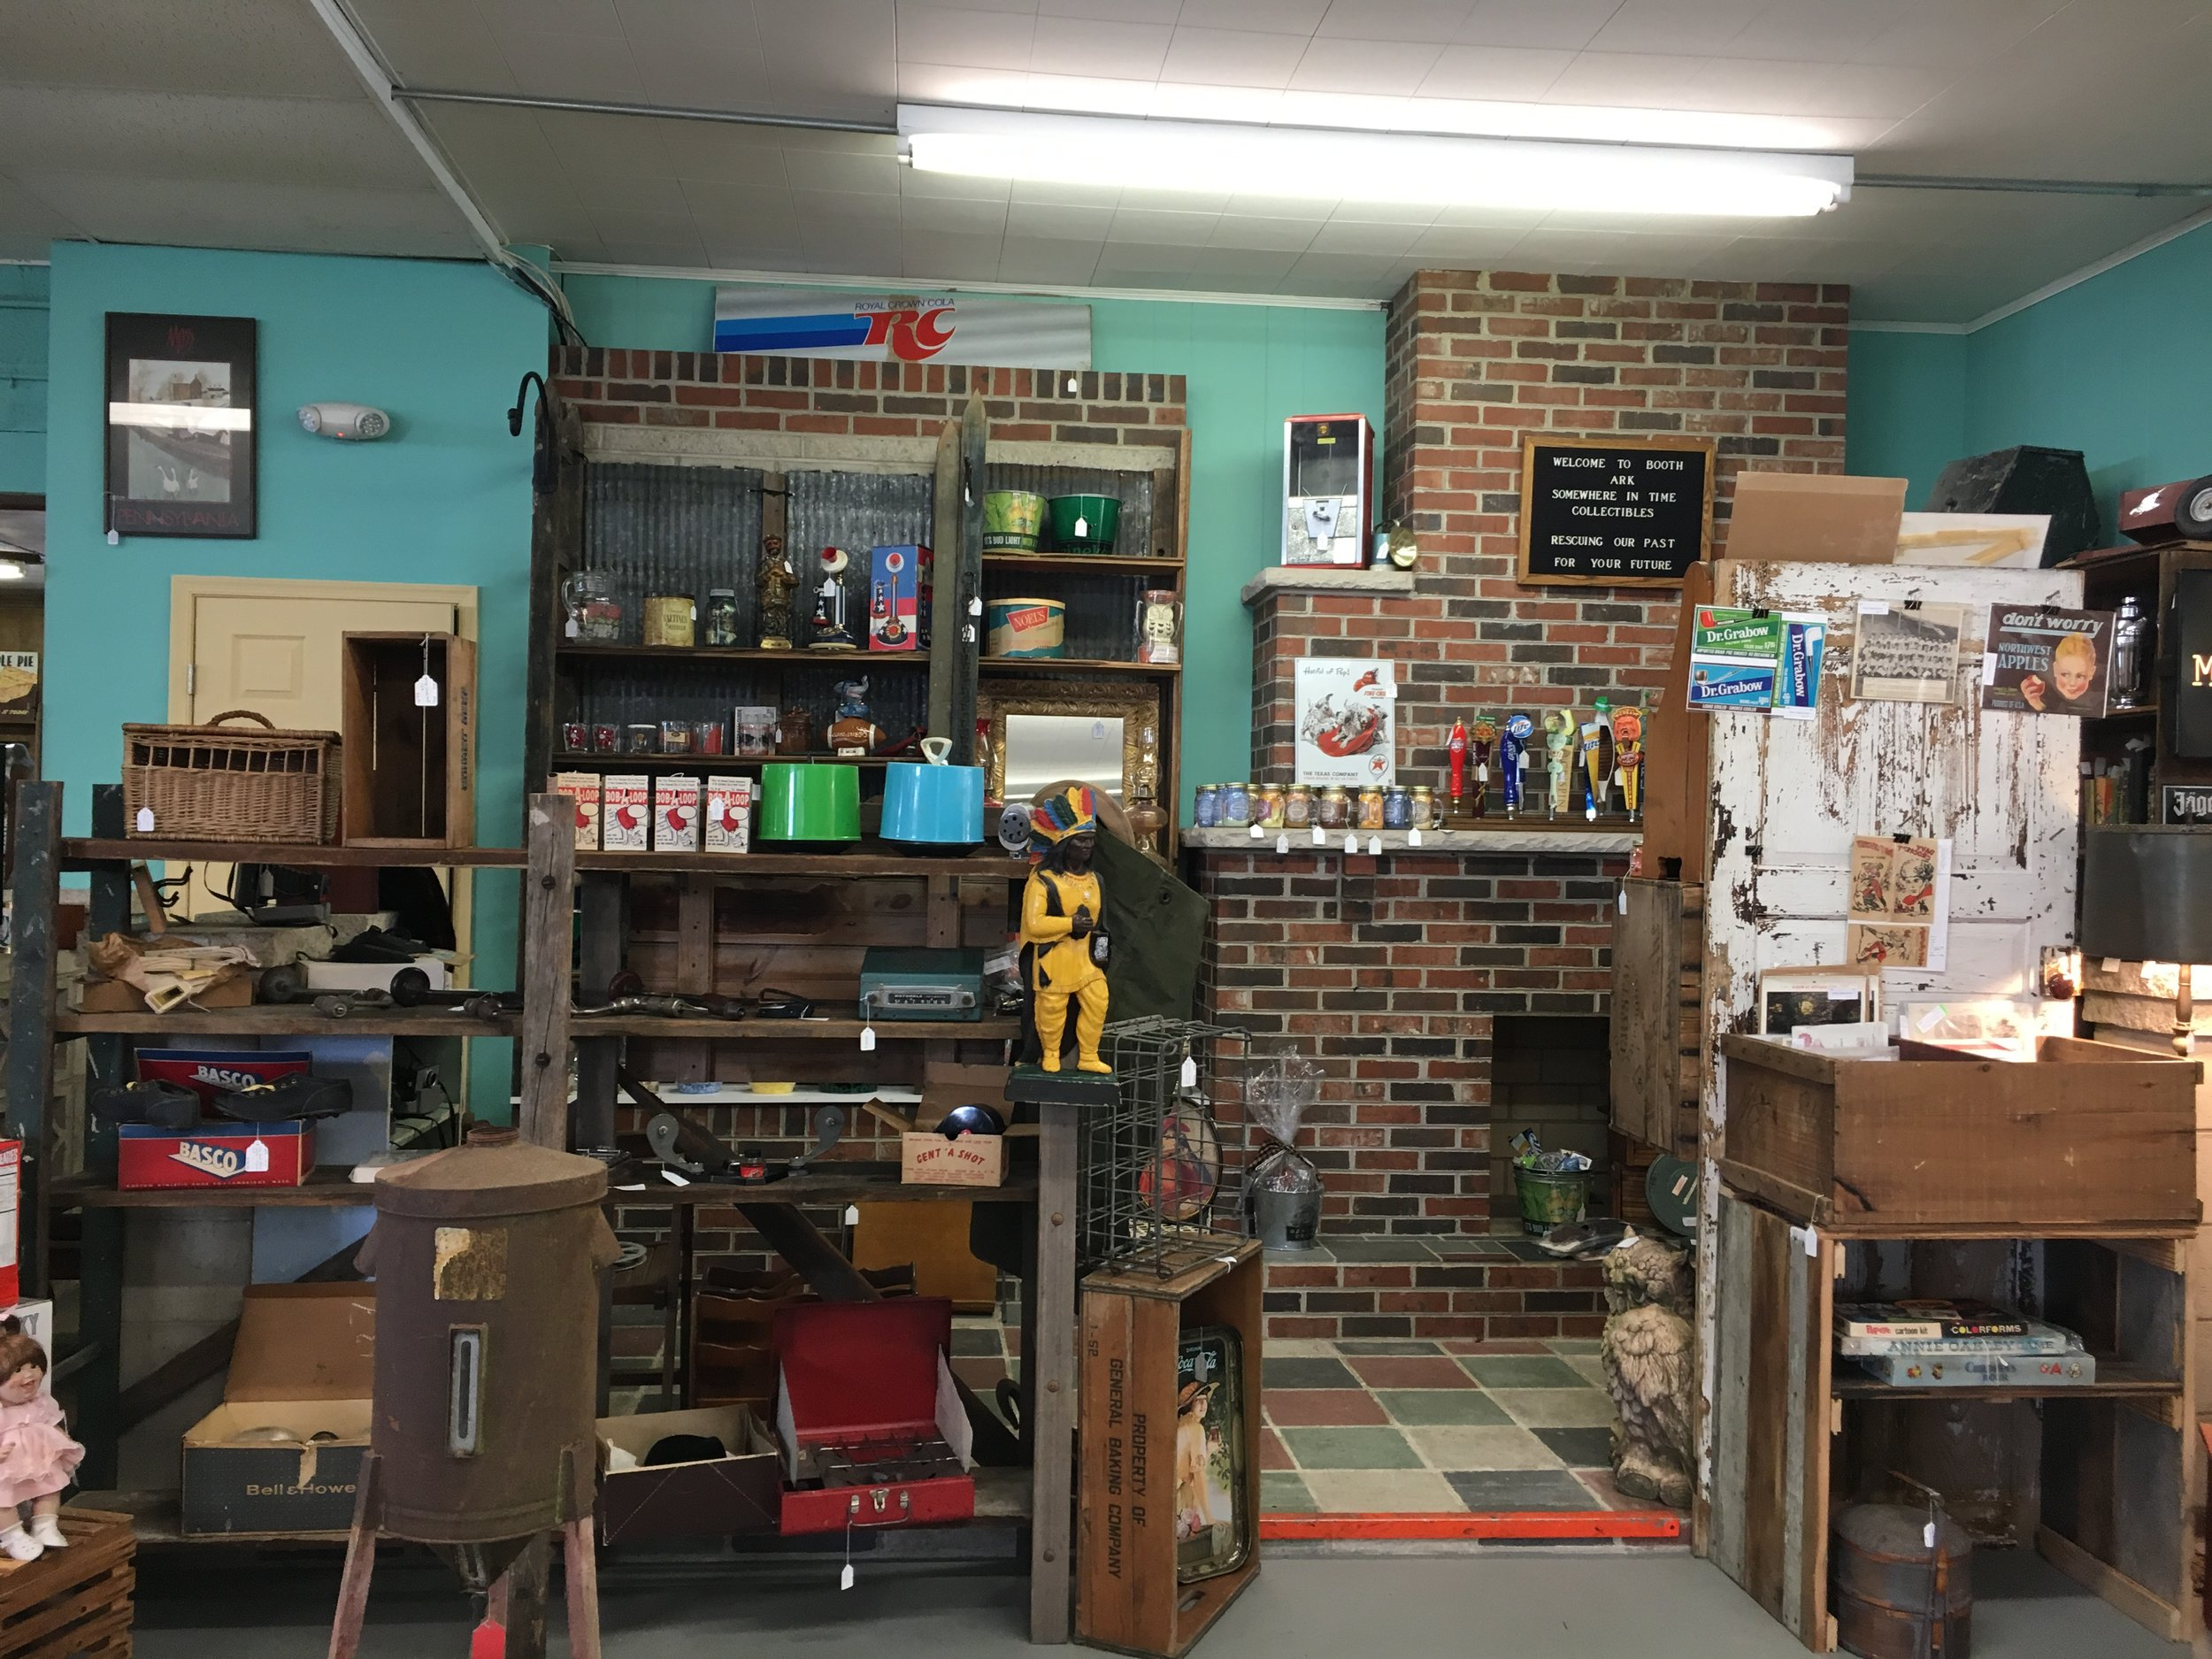 Somewhere InTime Collectibles - A variety of vintage, antique, collectible and home decor items